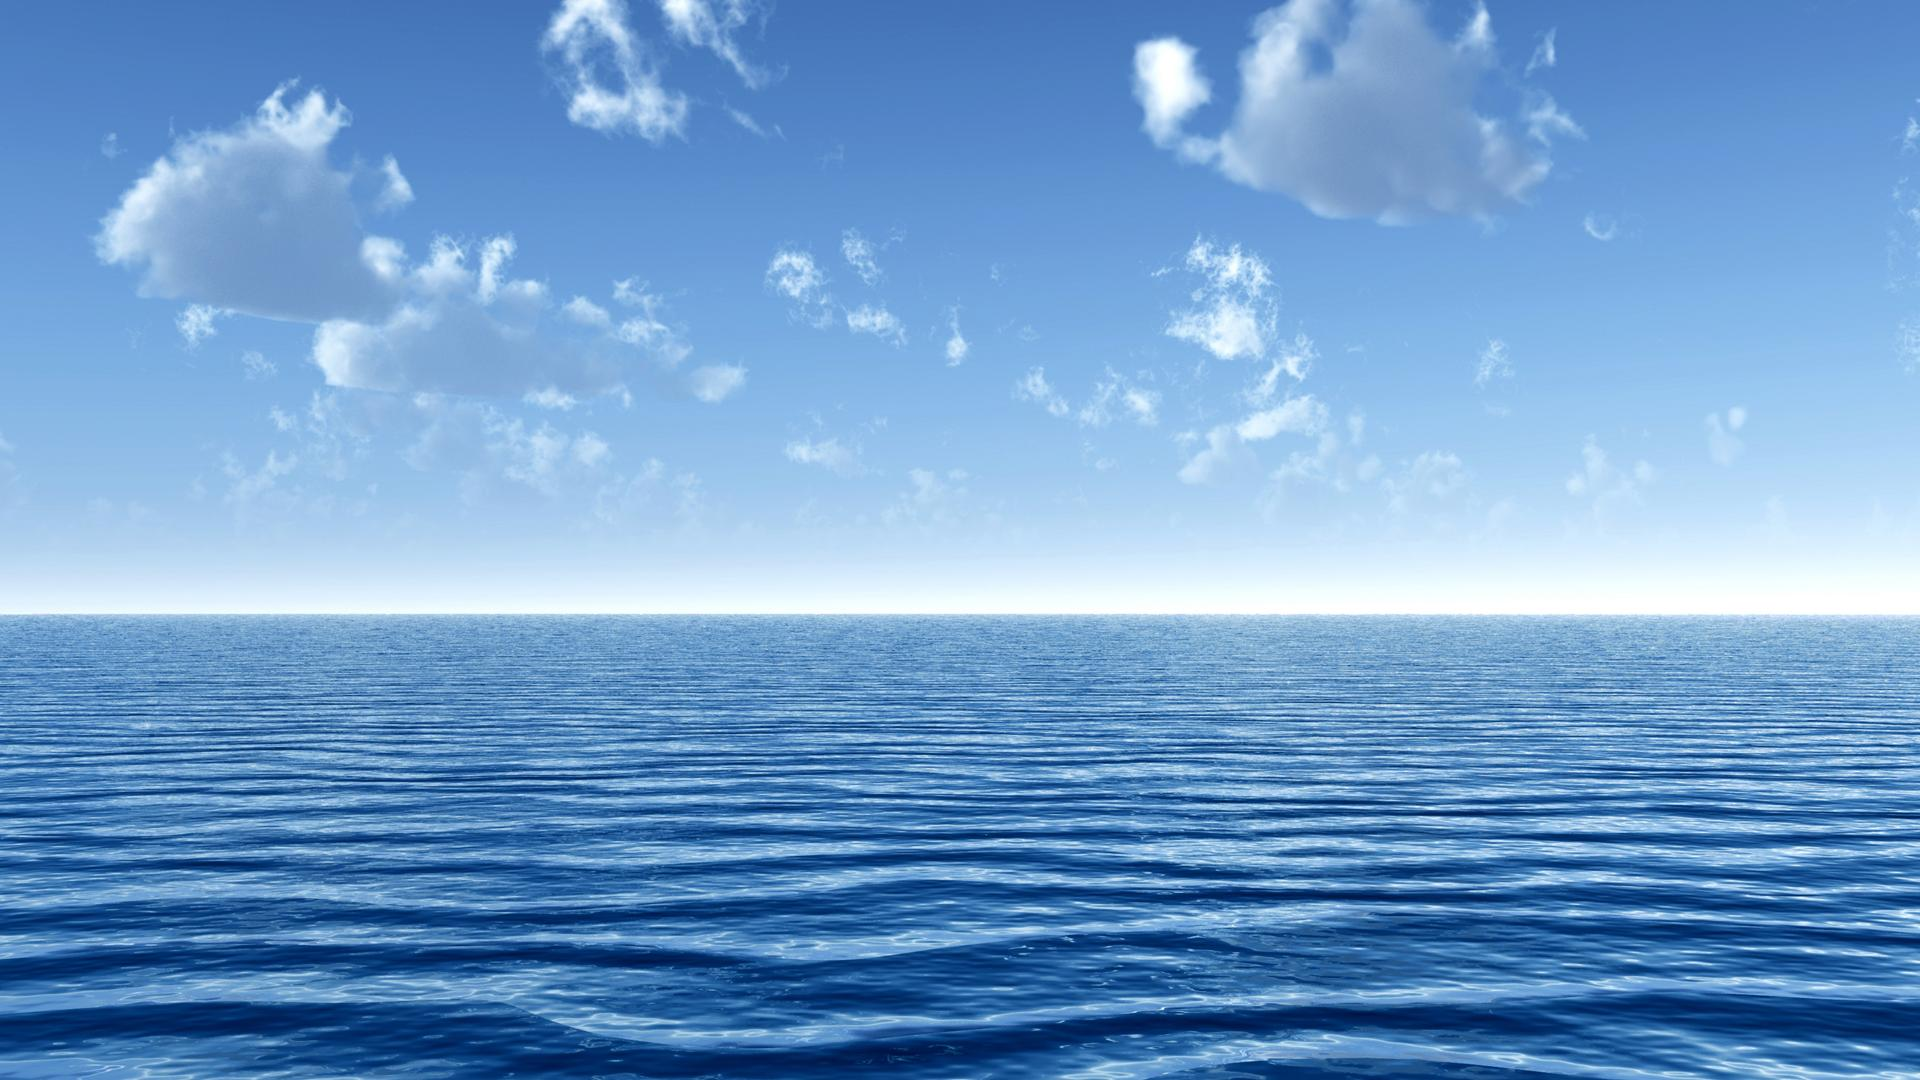 ocean water clouds wow nature 1920x1080